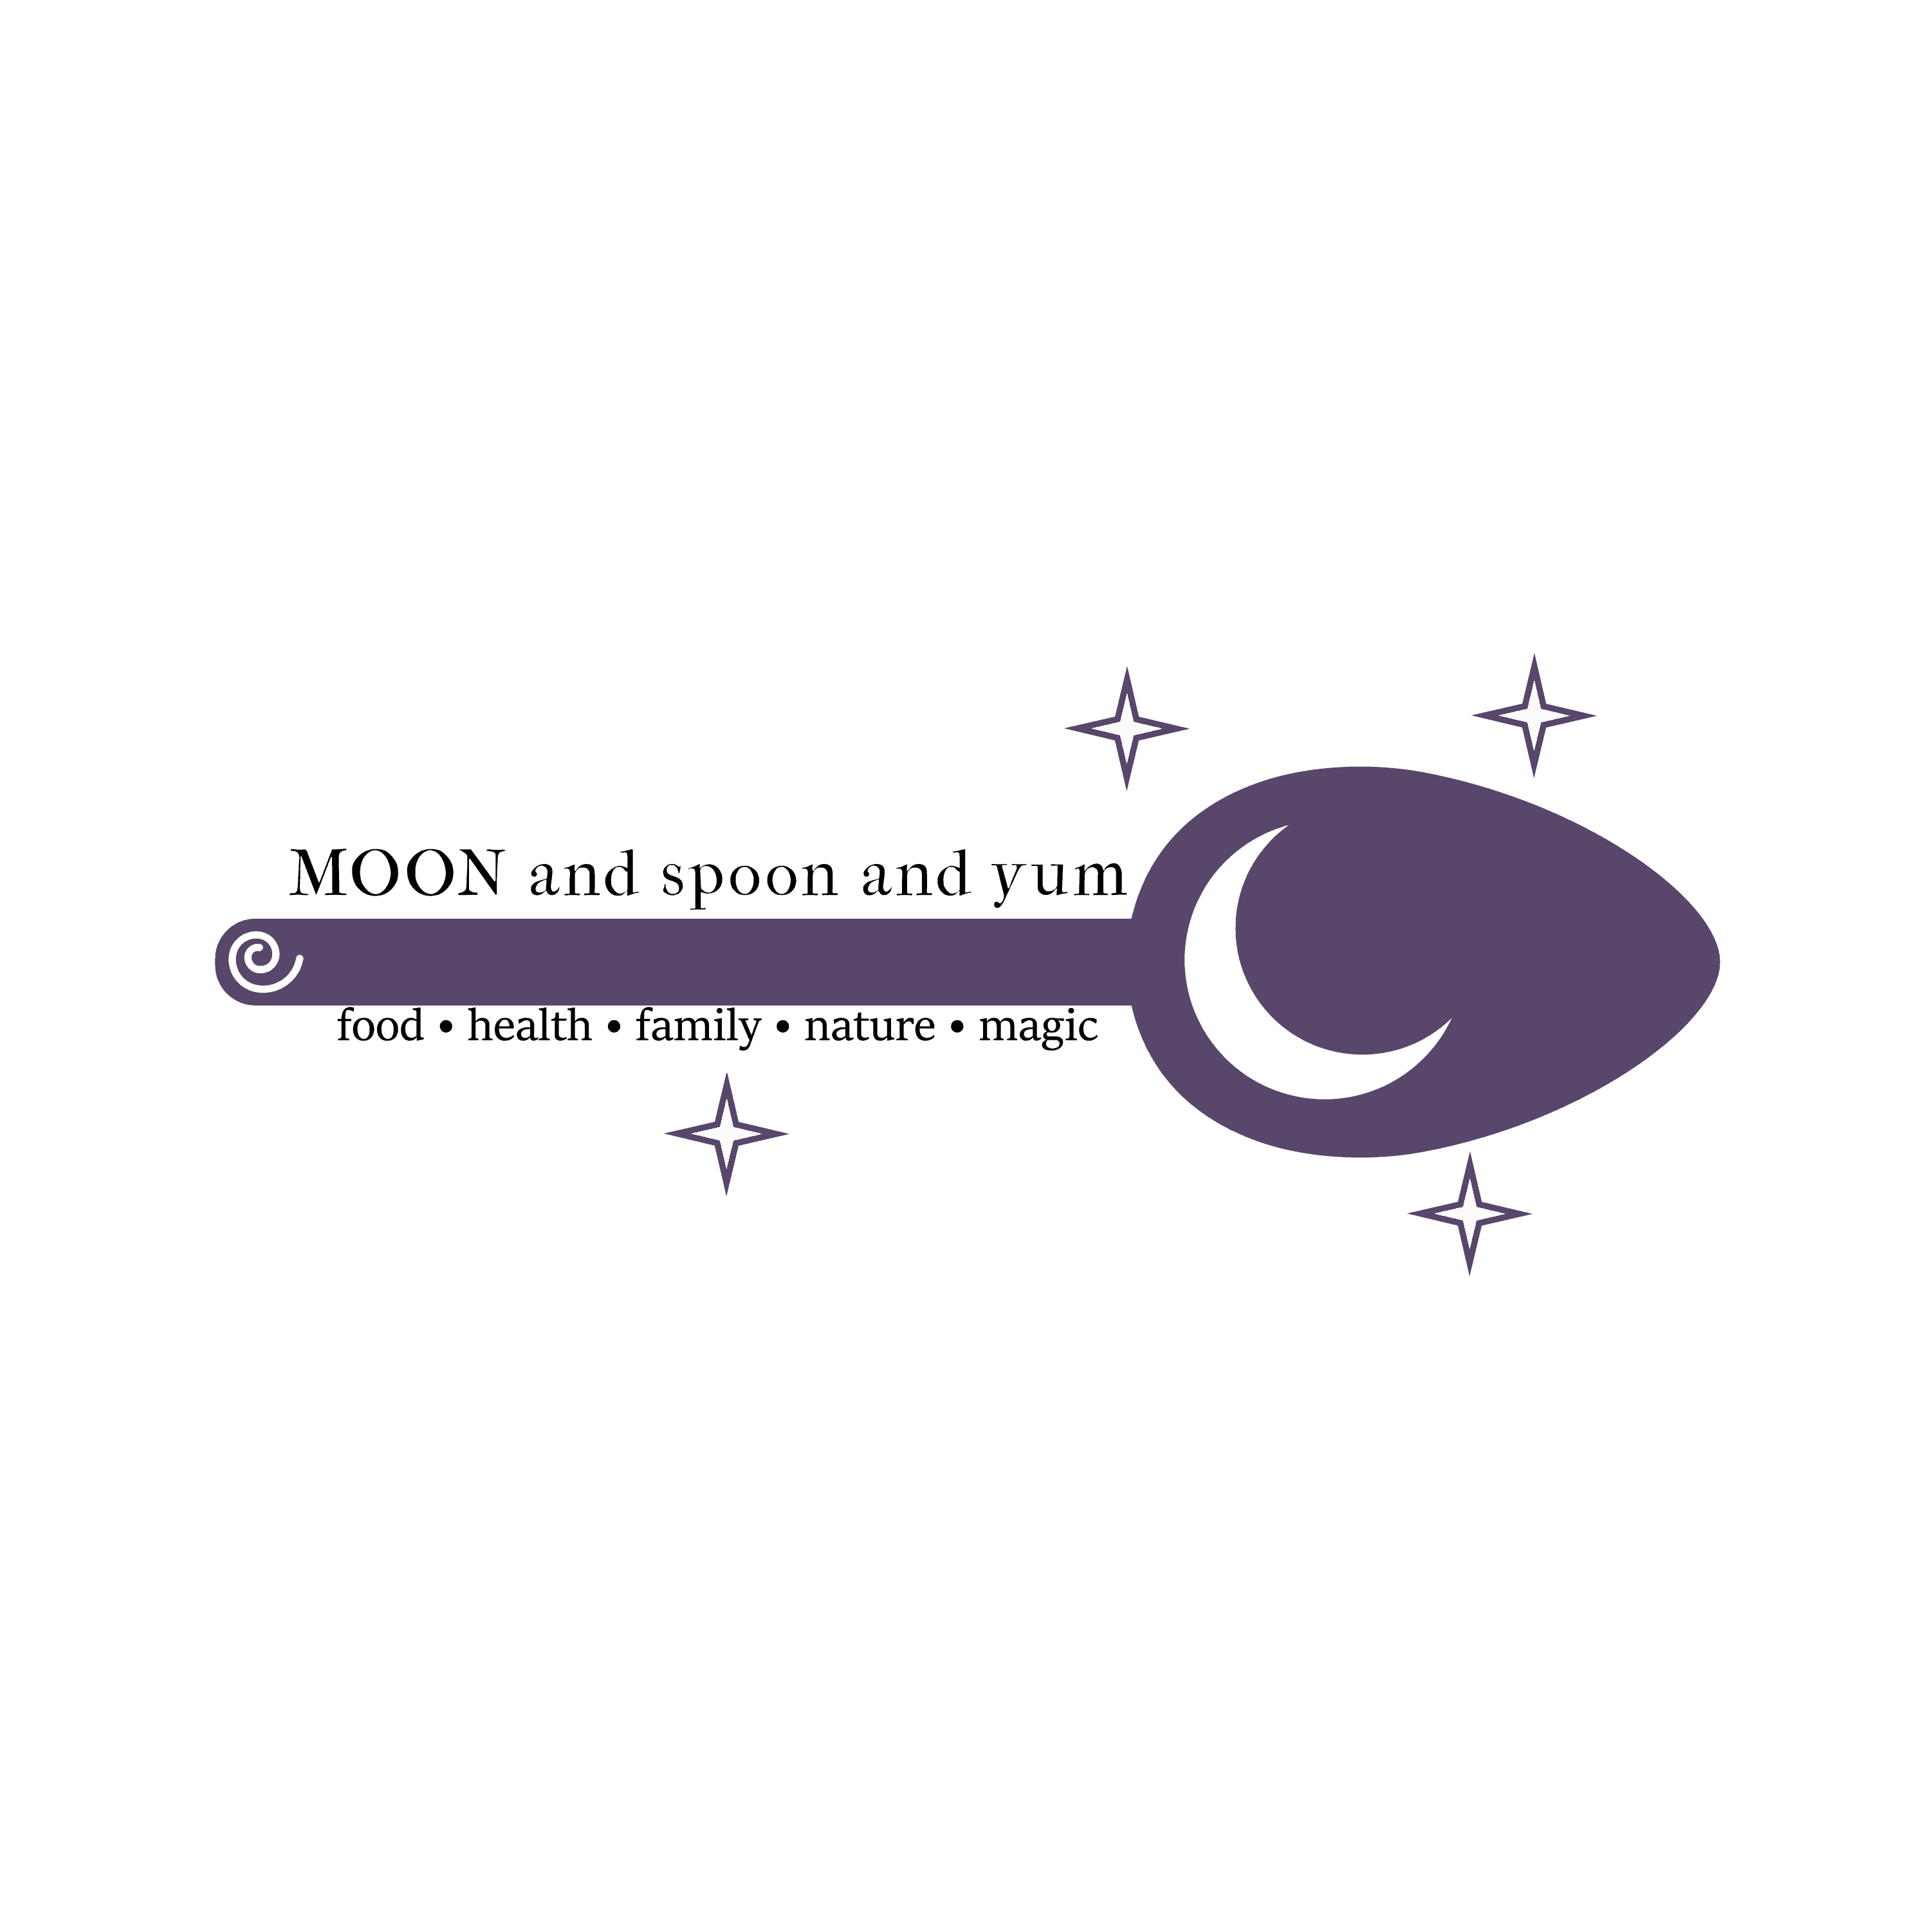 MOON and spoon and yum